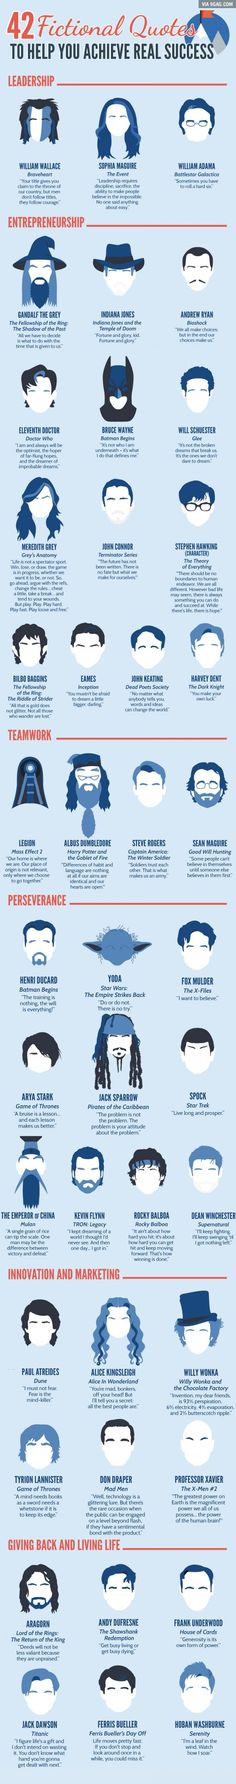 42 Inspiring Quotes For Success From Your Favorite Fictional Characters